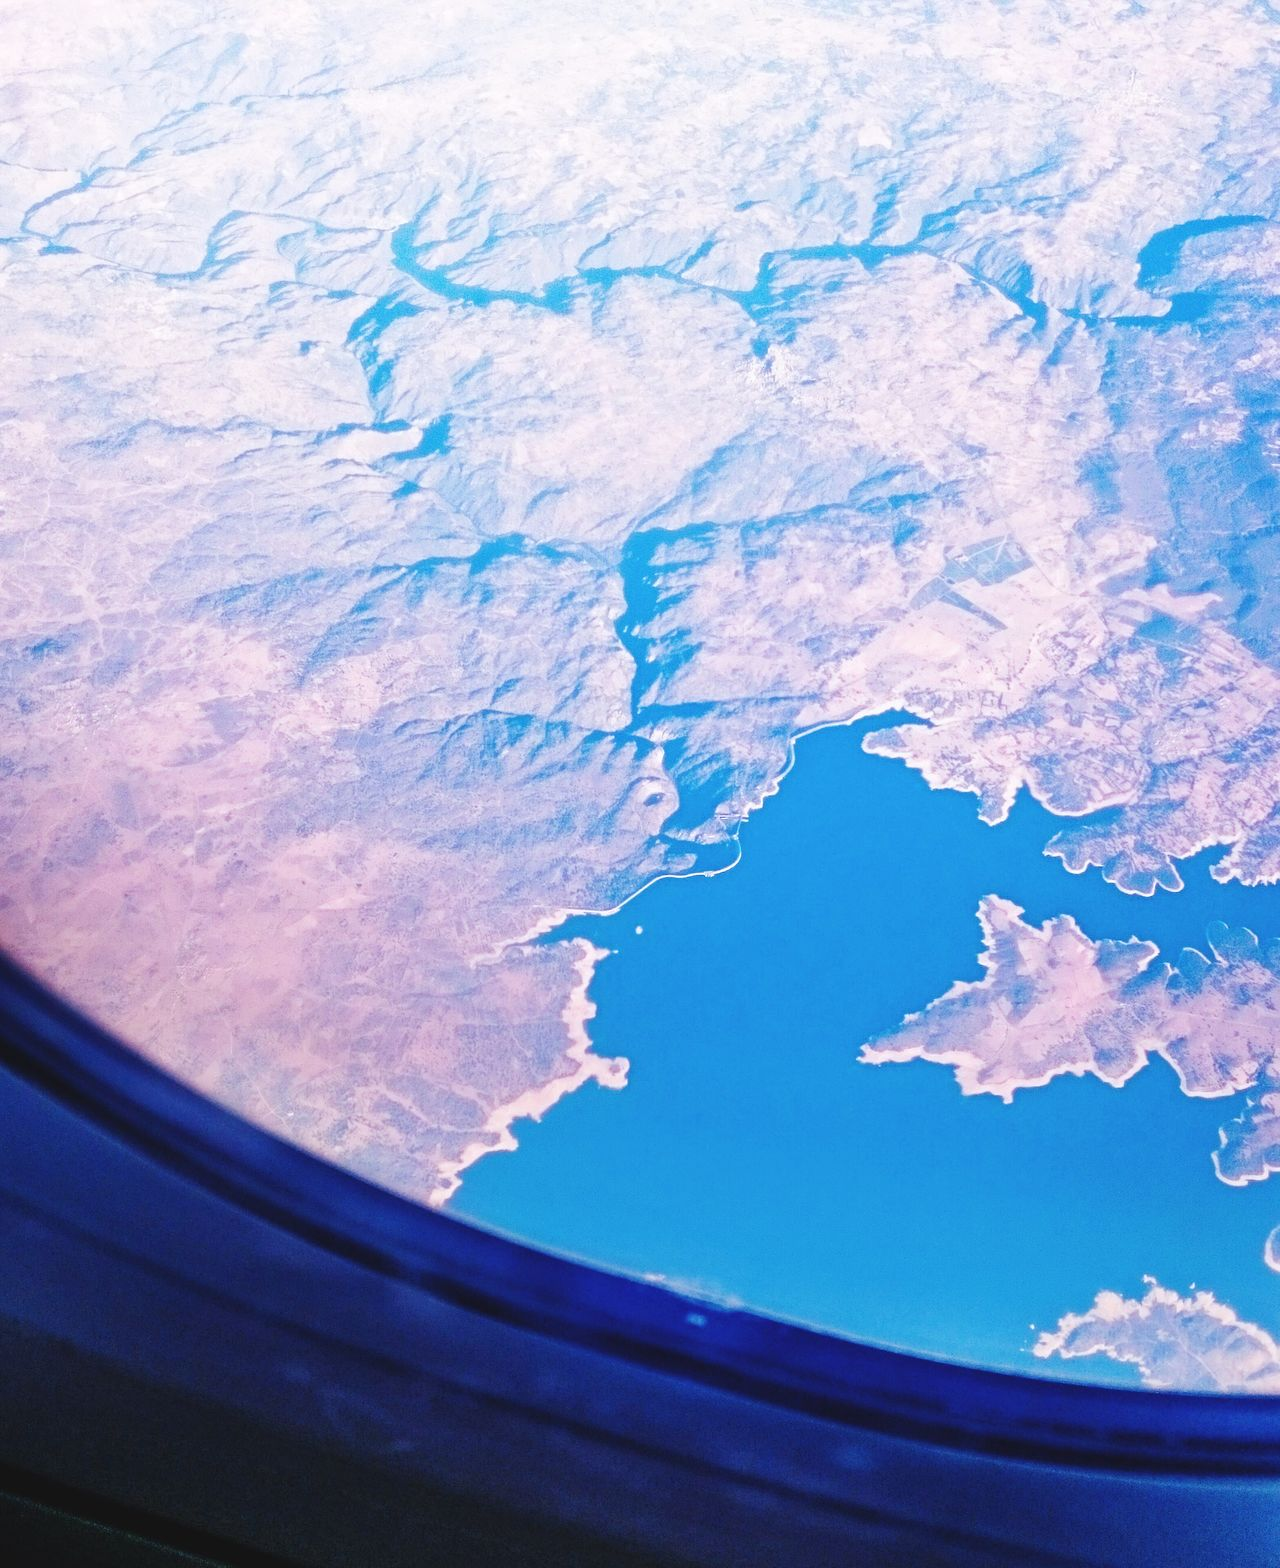 Flight over Spain Physical Geography Nature Scenics Mountain Sky Beauty In Nature Water Lake From An Airplane Window Flying Plane Airplane Dry Landscape Window View Mid-air SPAIN